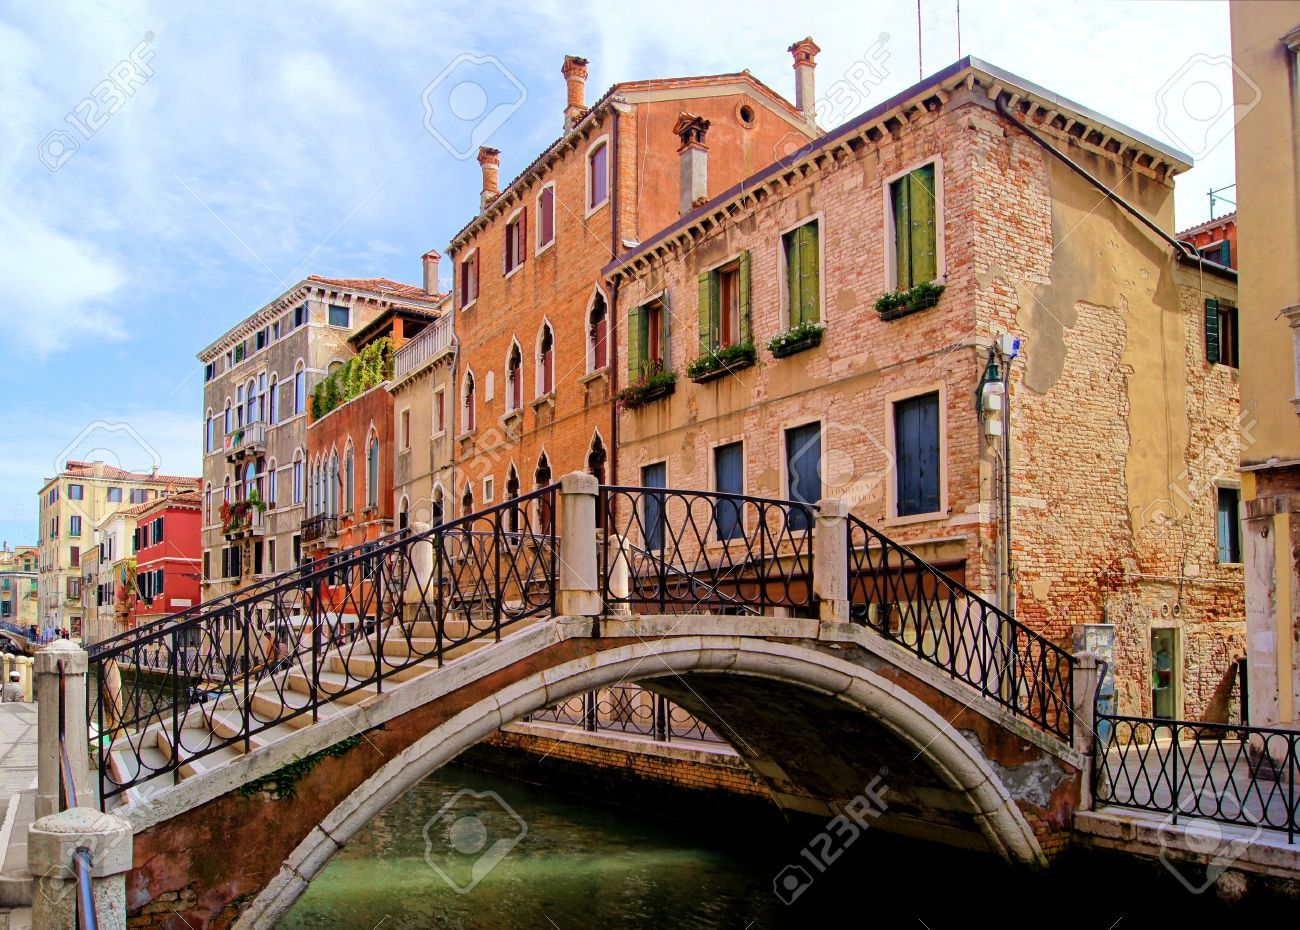 Bridge And Architecture Along The Canals Of Venice, Italy Stock .